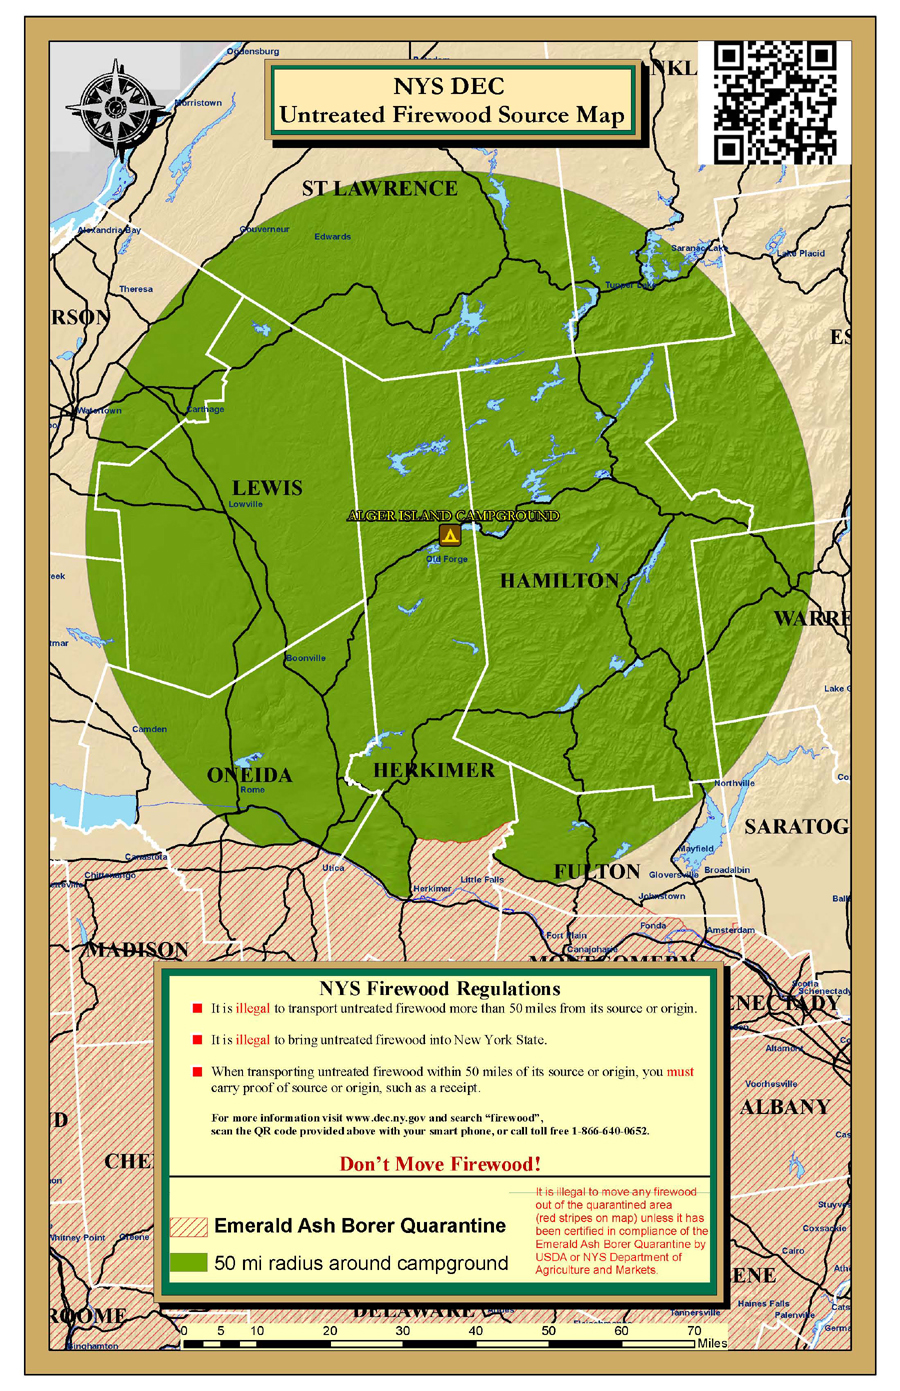 Map showing 50-mile radius around campground